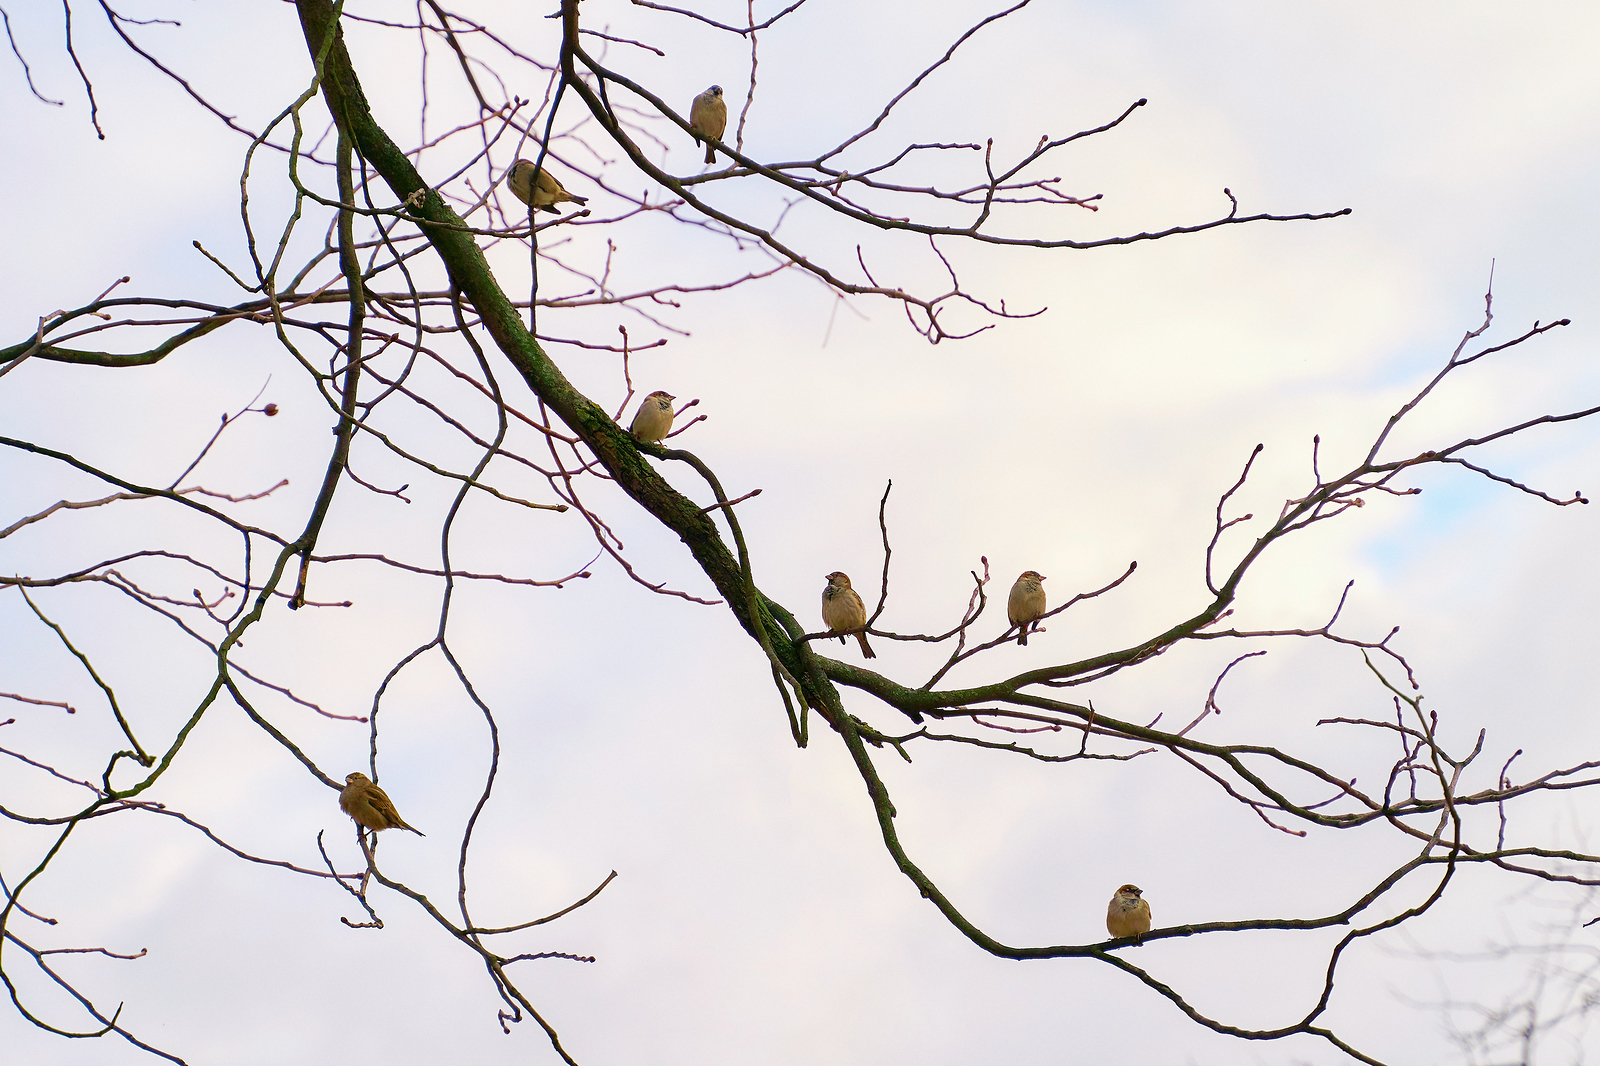 sparrows-social-distancing-on-branches